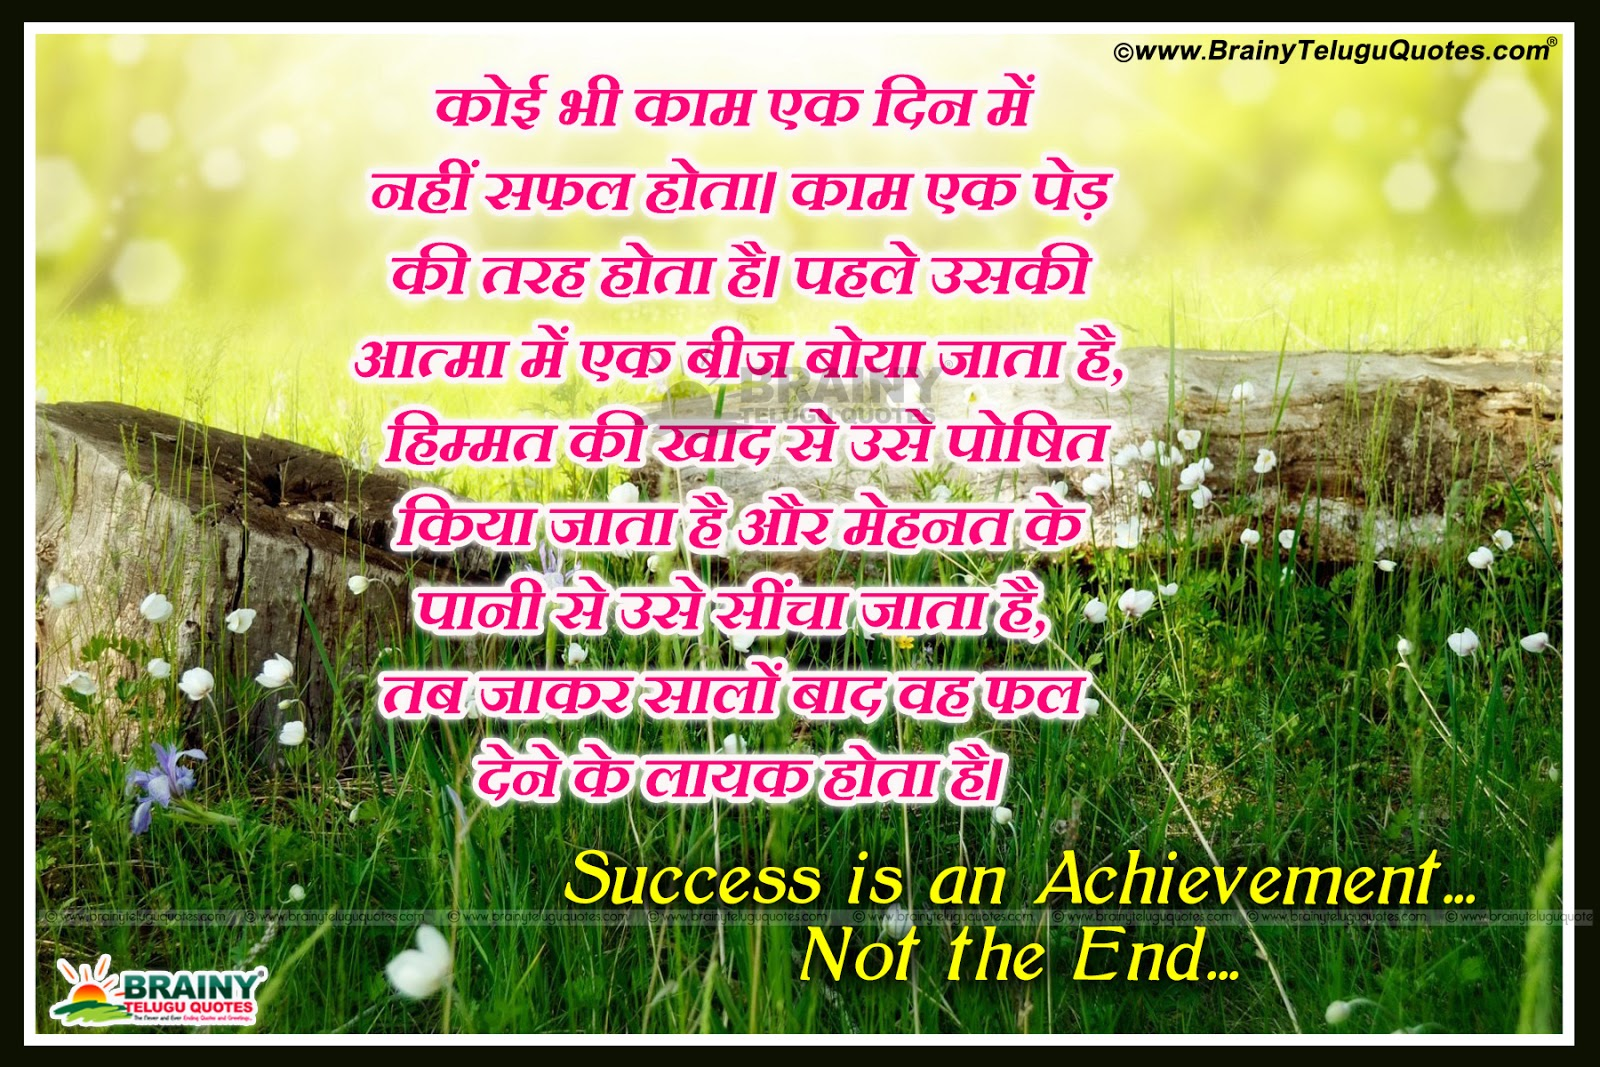 success quotes in hindi-inspirational success quotes in